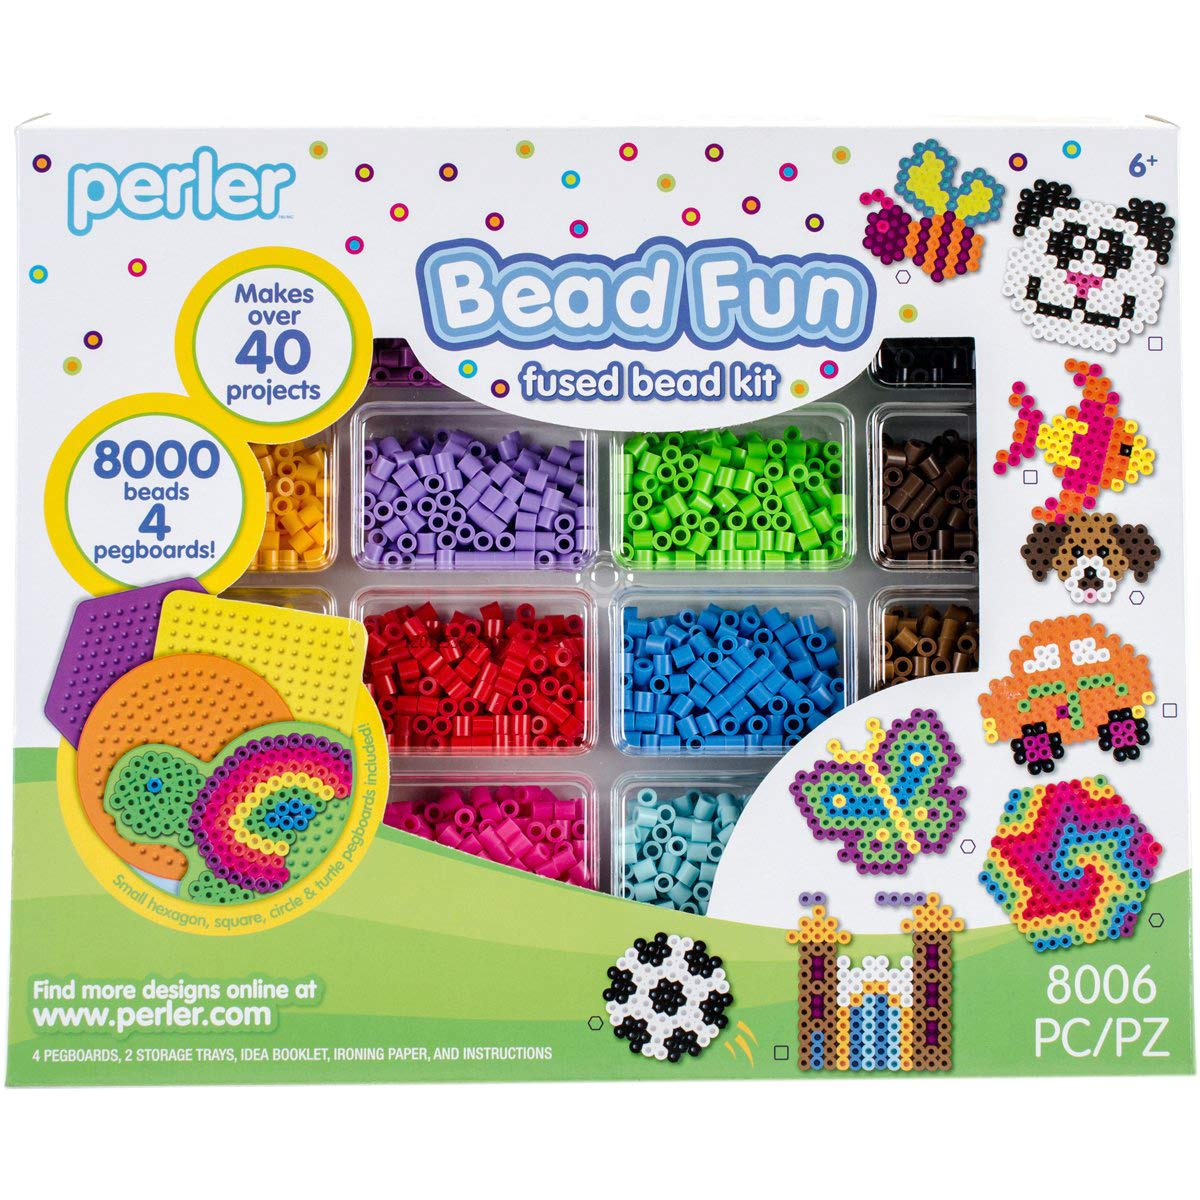 Perler Activity Kit and Storage Trays, 8000 Beads + pegboards, 8006 pcs by Perler